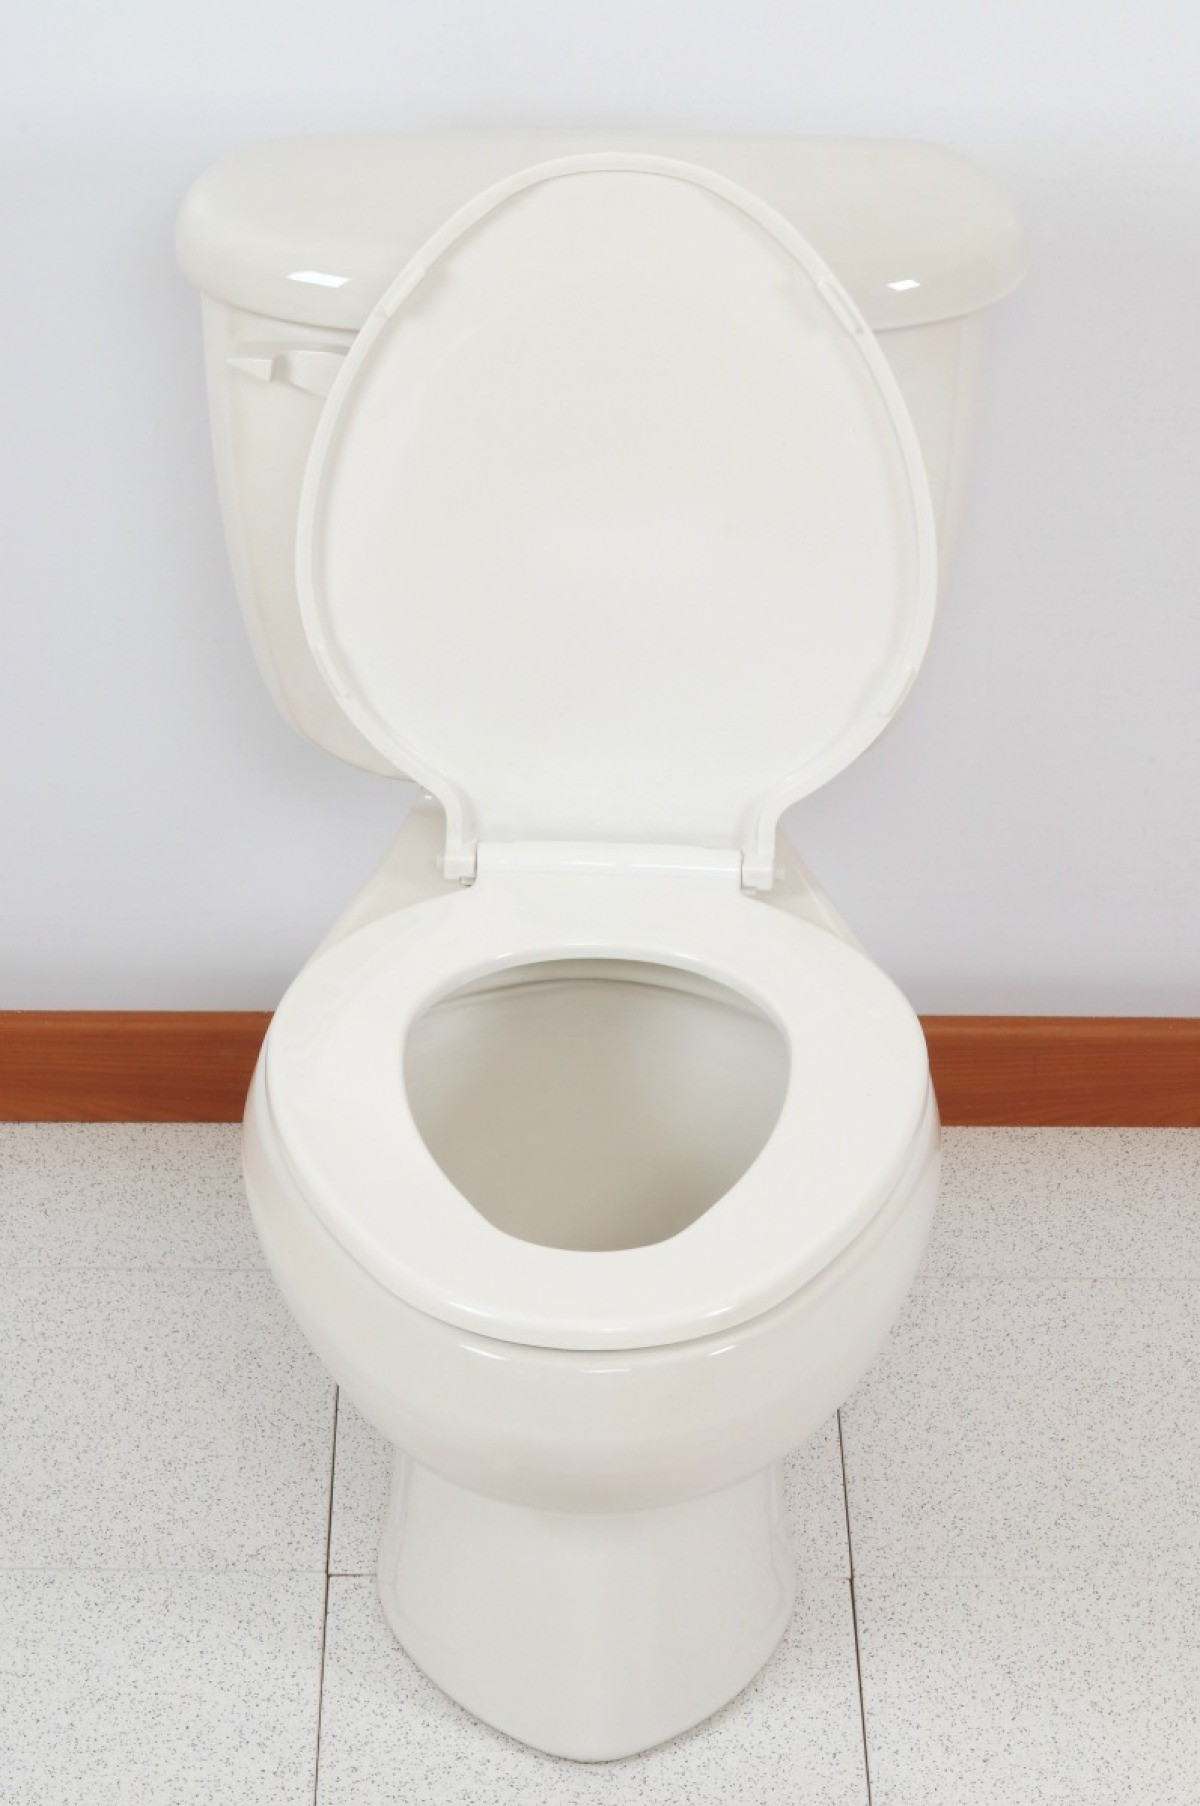 Mineral Deposits In The Toilet Not Only Create An Unsightly Ring Bowl They Can Also Cause Problems If Disrupt Normal Flow Of Water Into And Out